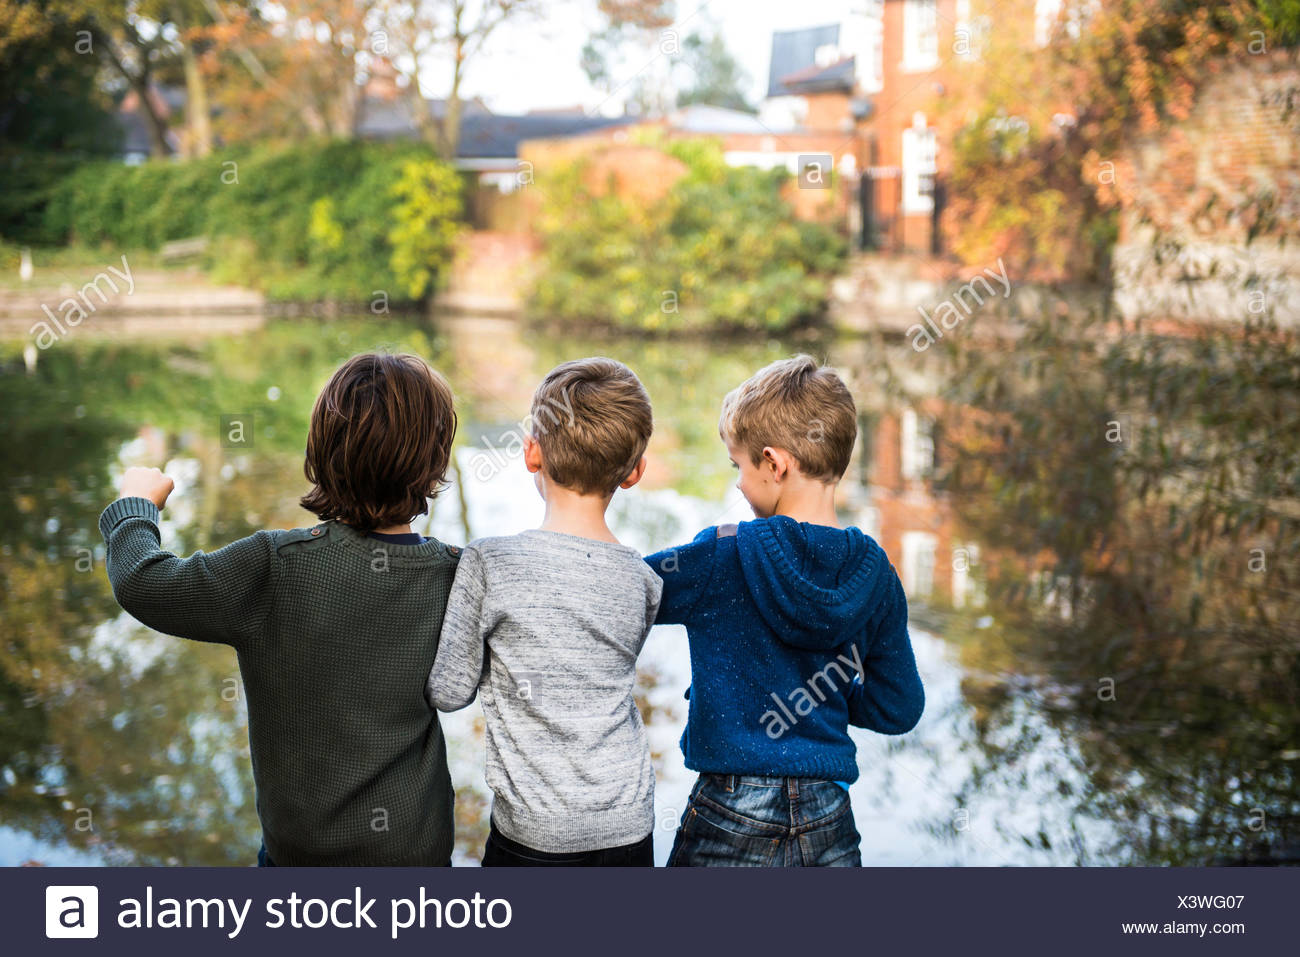 Three young boys, standing beside lake, rear view - Stock Image